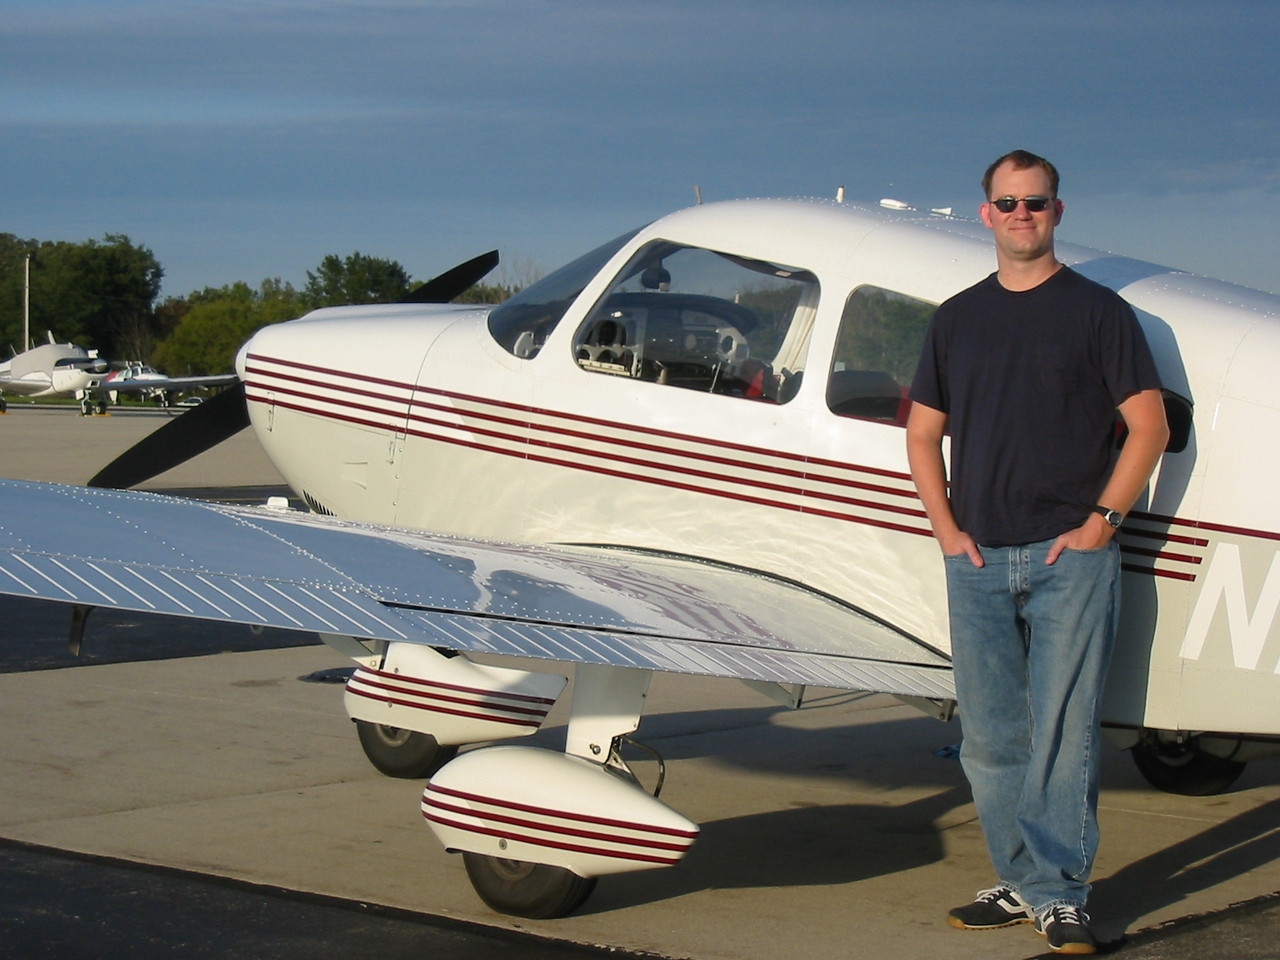 Hard not to feel confident on the day you get your Pilot's License